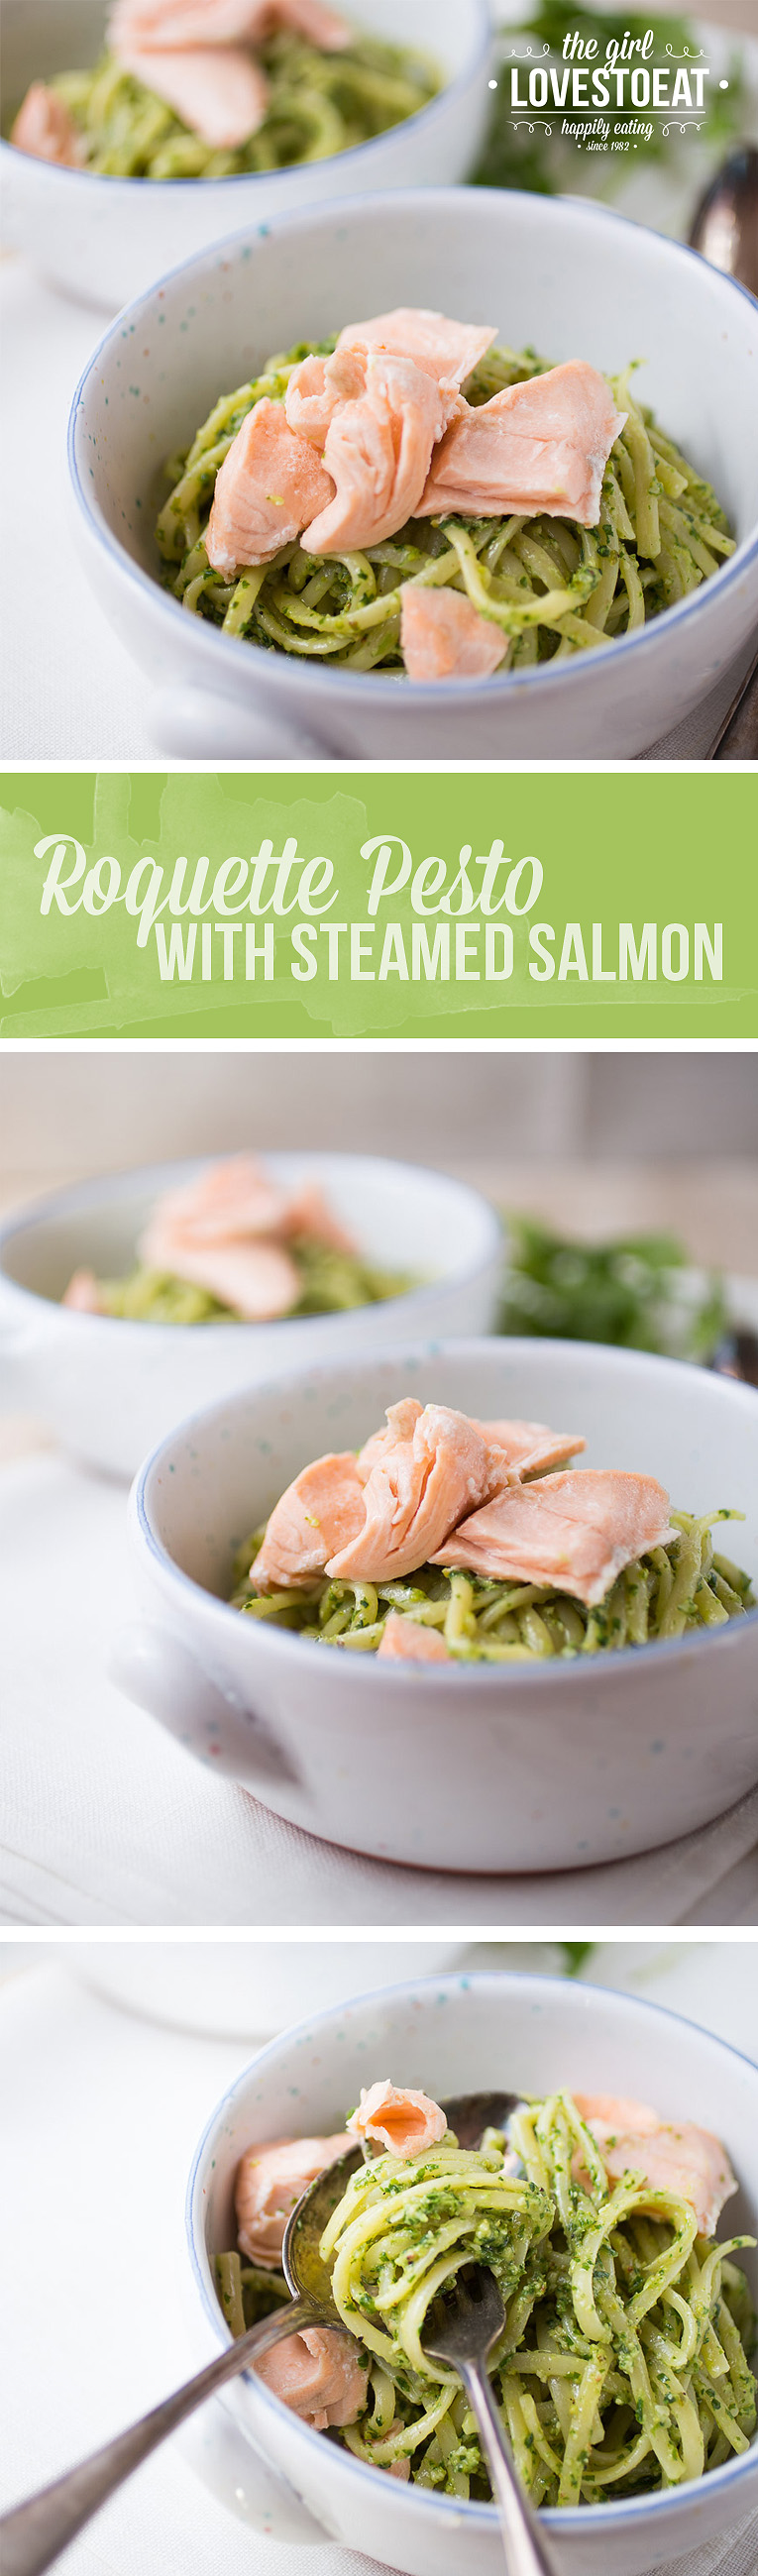 Roquette pesto with steamed salmon